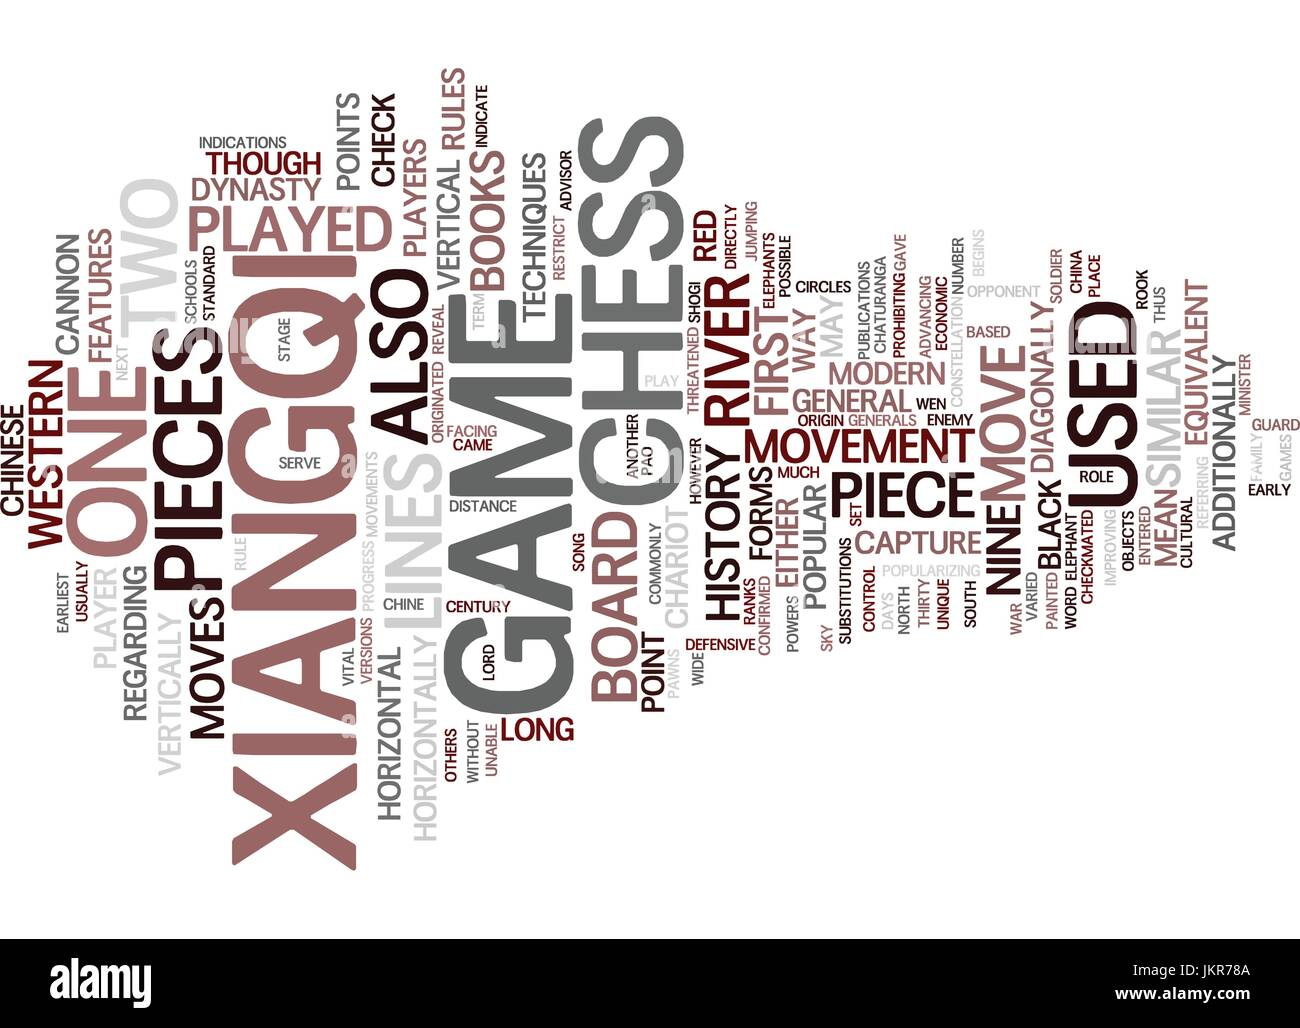 THE CHINESE CHESS XIANGQI Text Background Word Cloud Concept - Stock Image